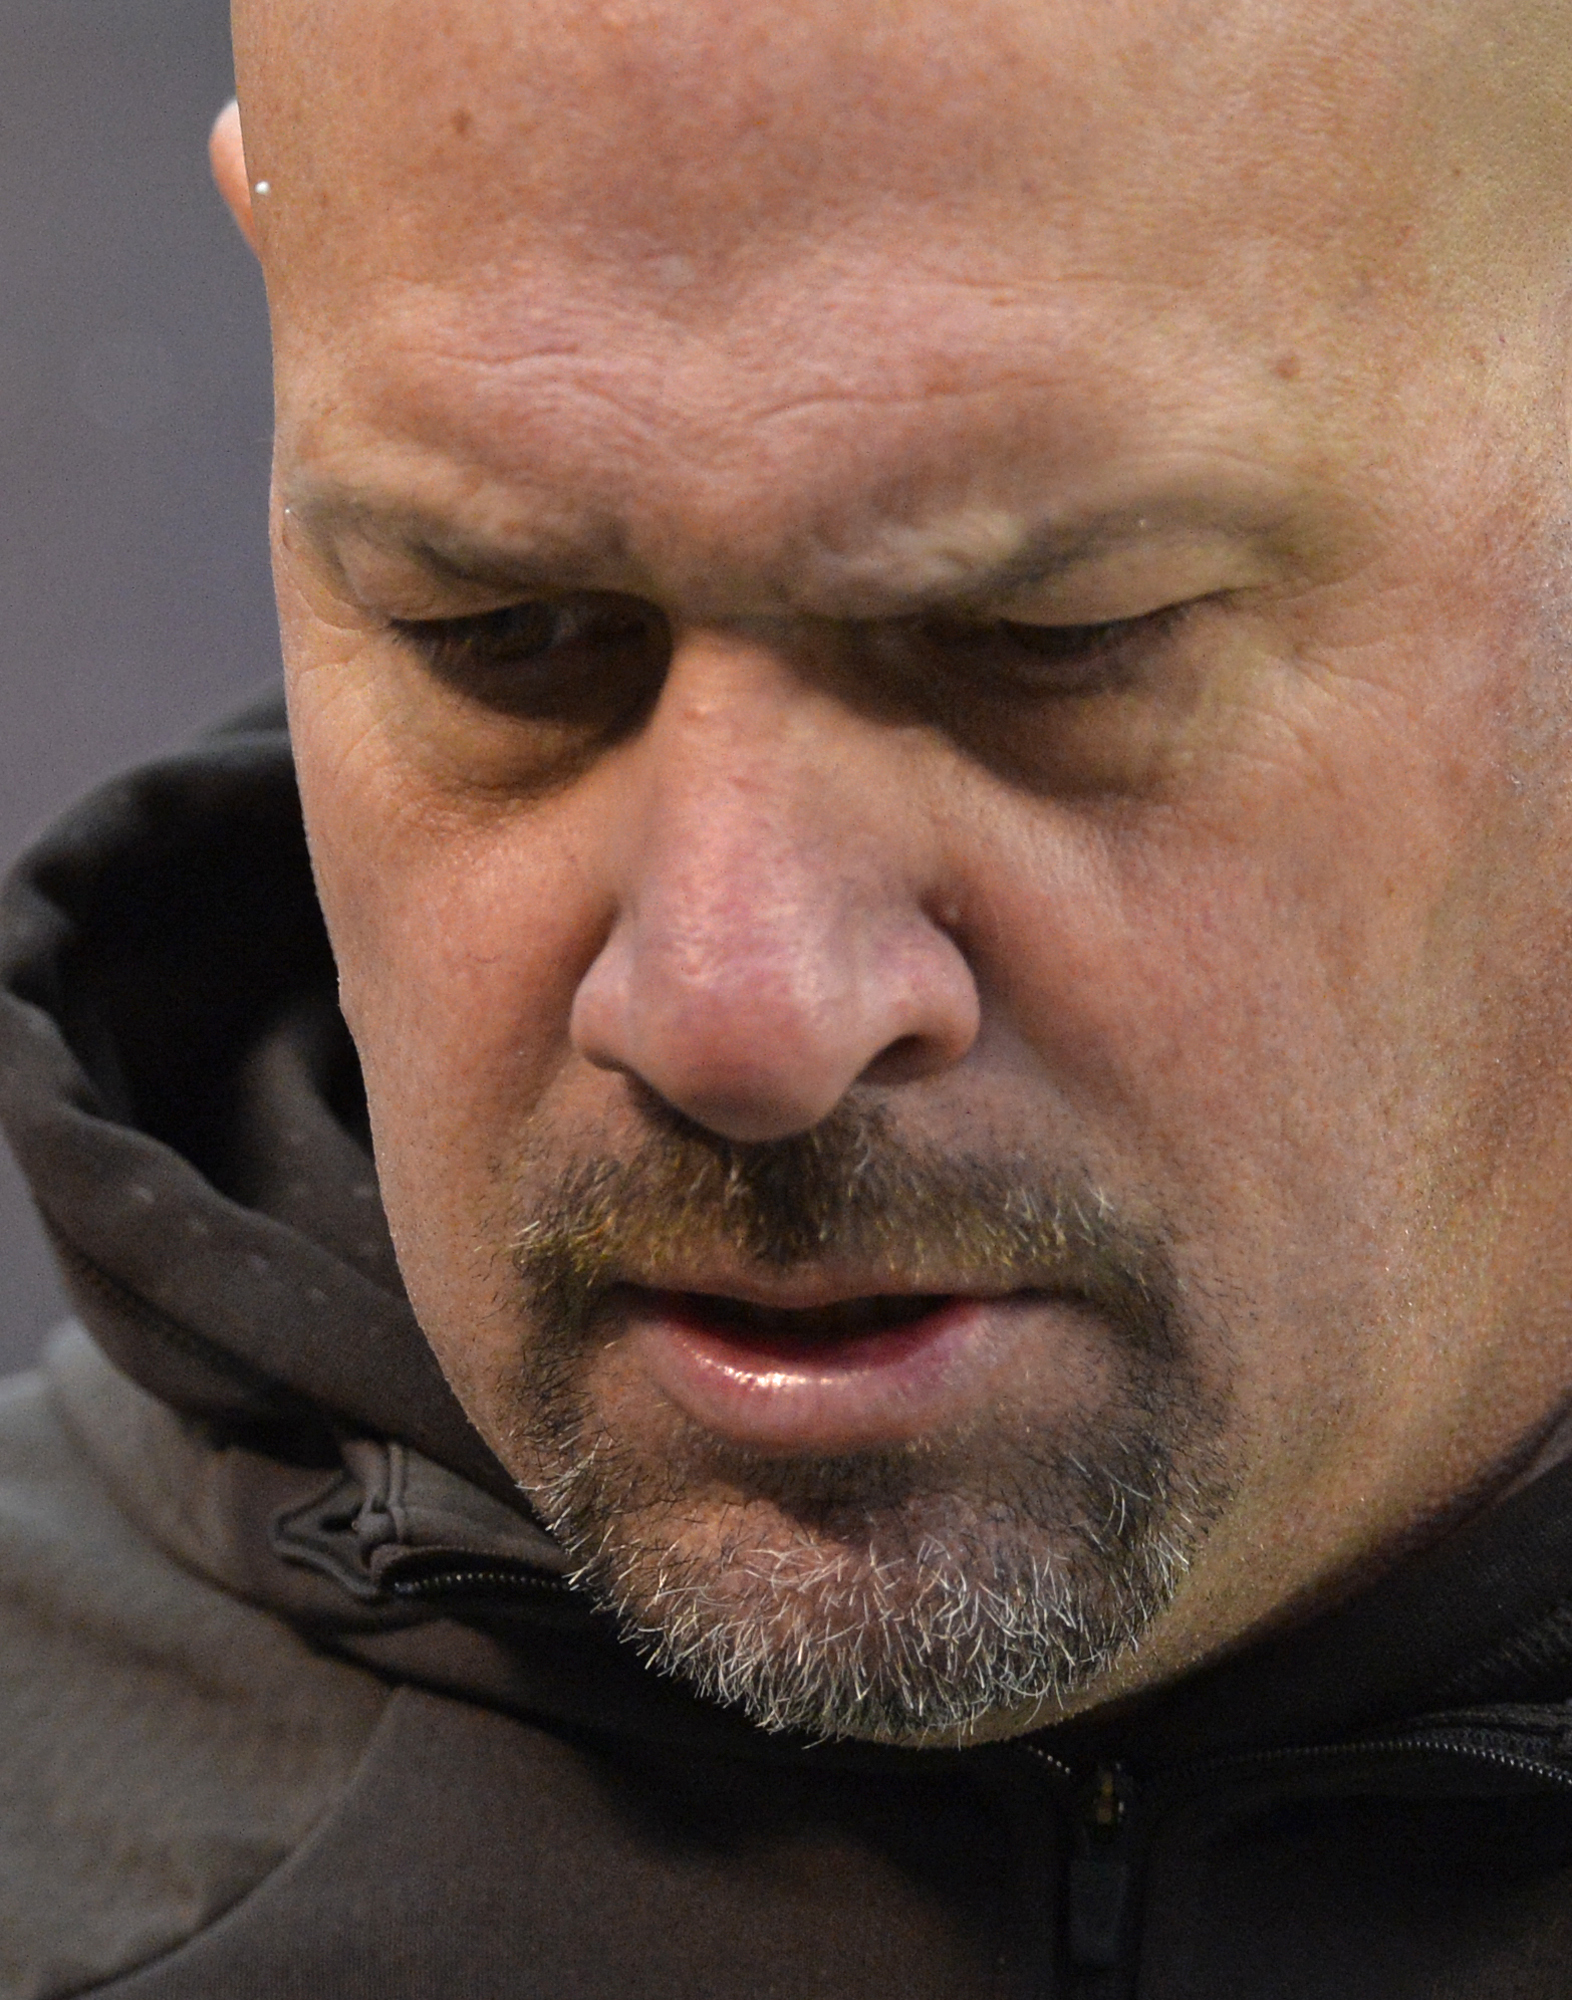 Cleveland Browns head coach Mike Pettine walks to the locker room at halftime during an NFL football game against the Pittsburgh Steelers, Sunday, Jan. 3, 2016, in Cleveland. (AP Photo/David Richard)